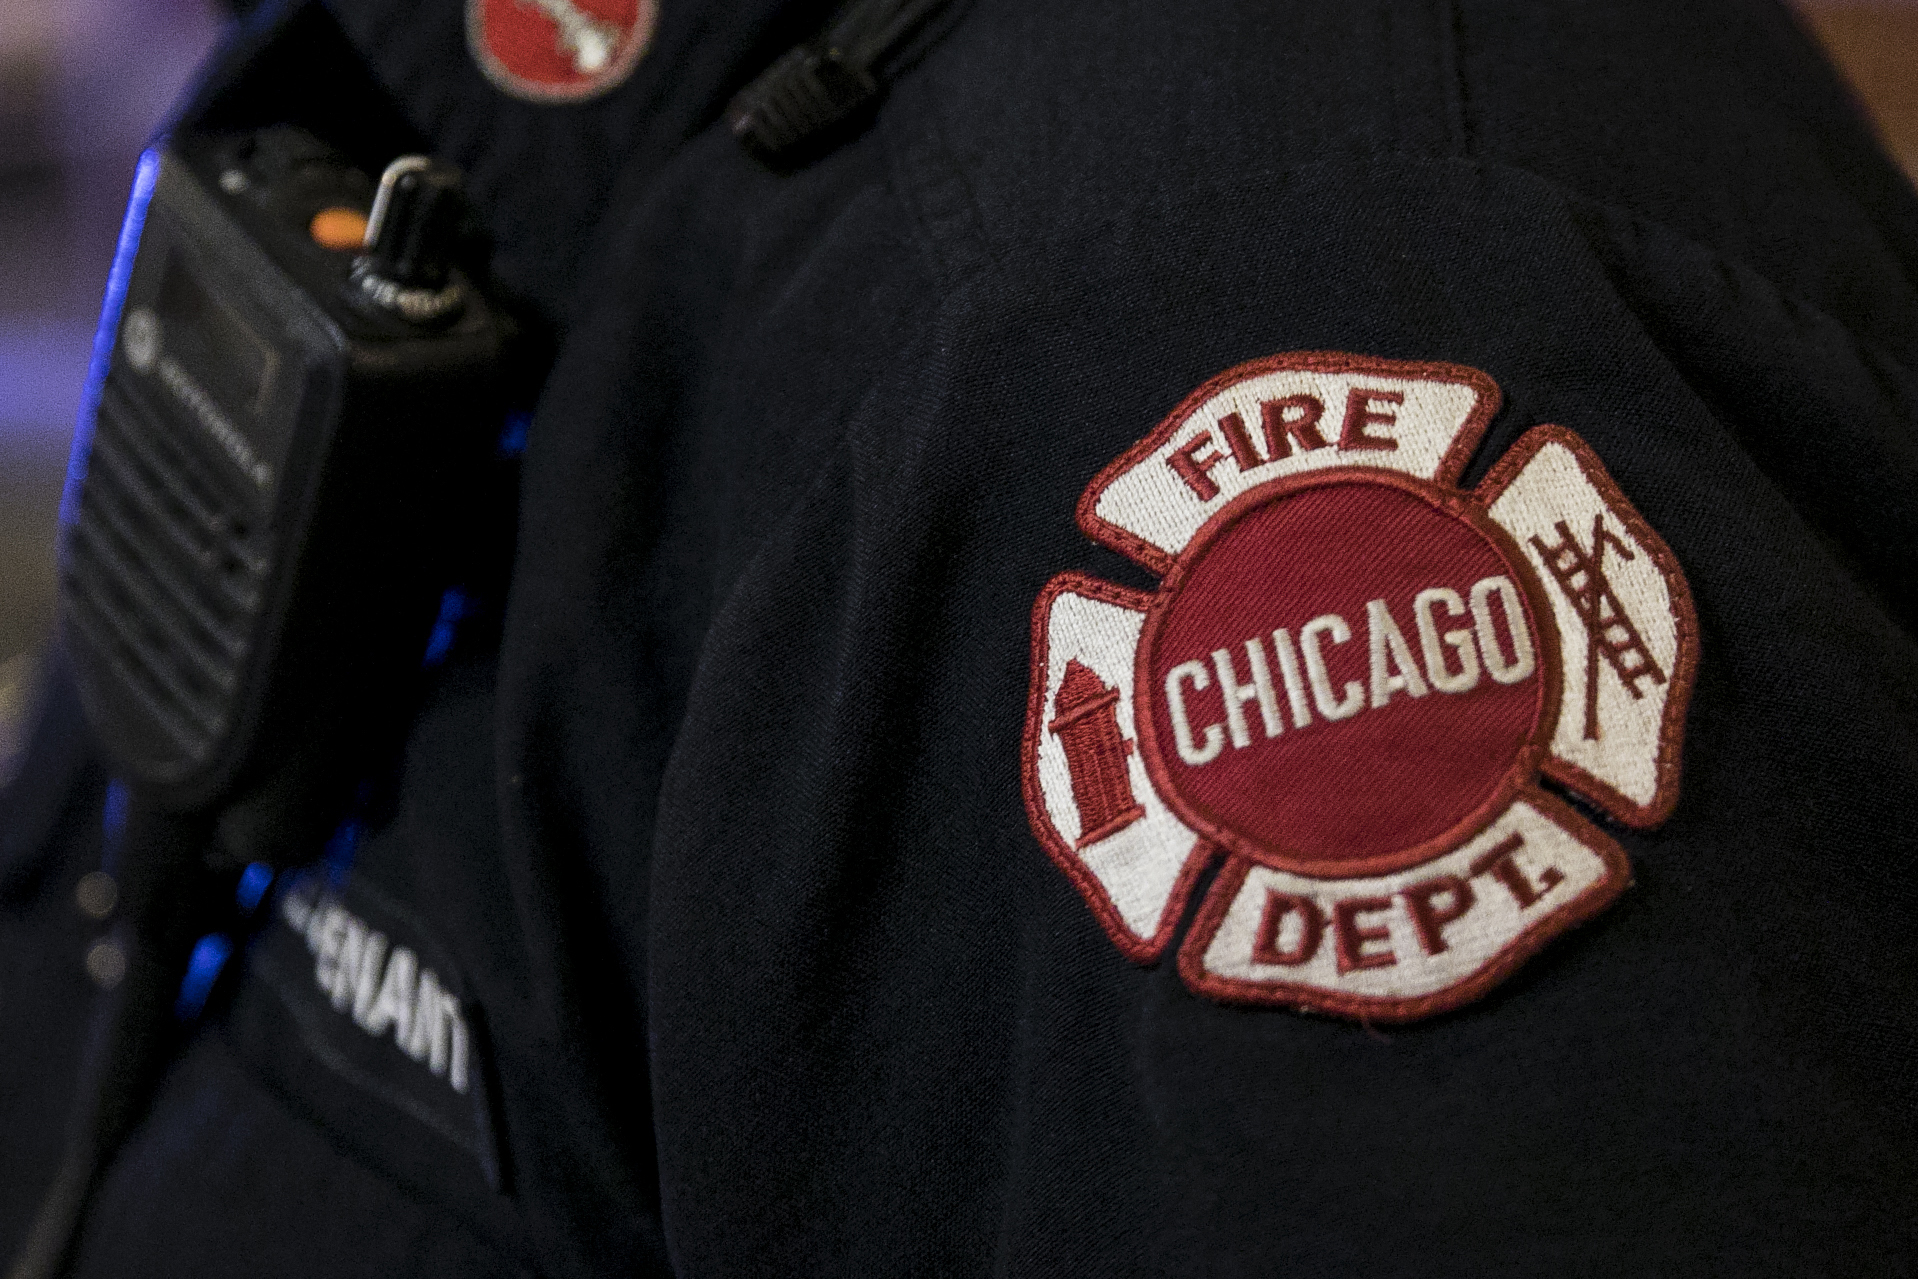 Seven people were displaced in a house fire Oct. 18, 2020, in the 8300 block of South Colfax Avenue.